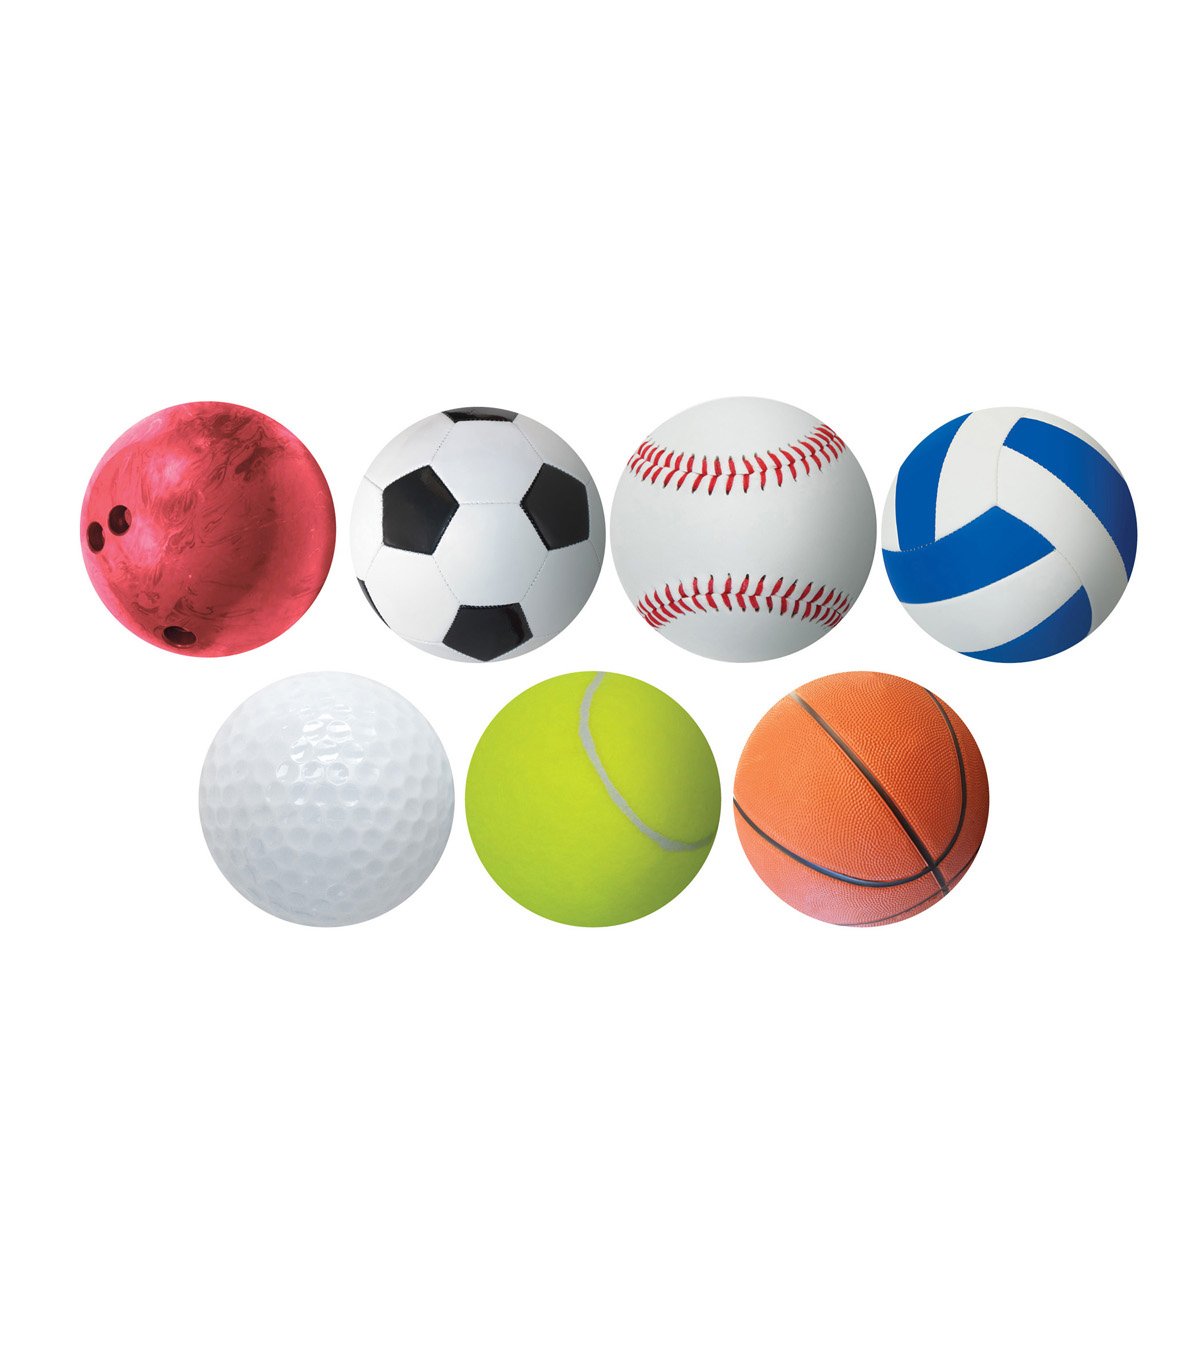 6in Sports Accents 30/pk, Set of 6 Packs